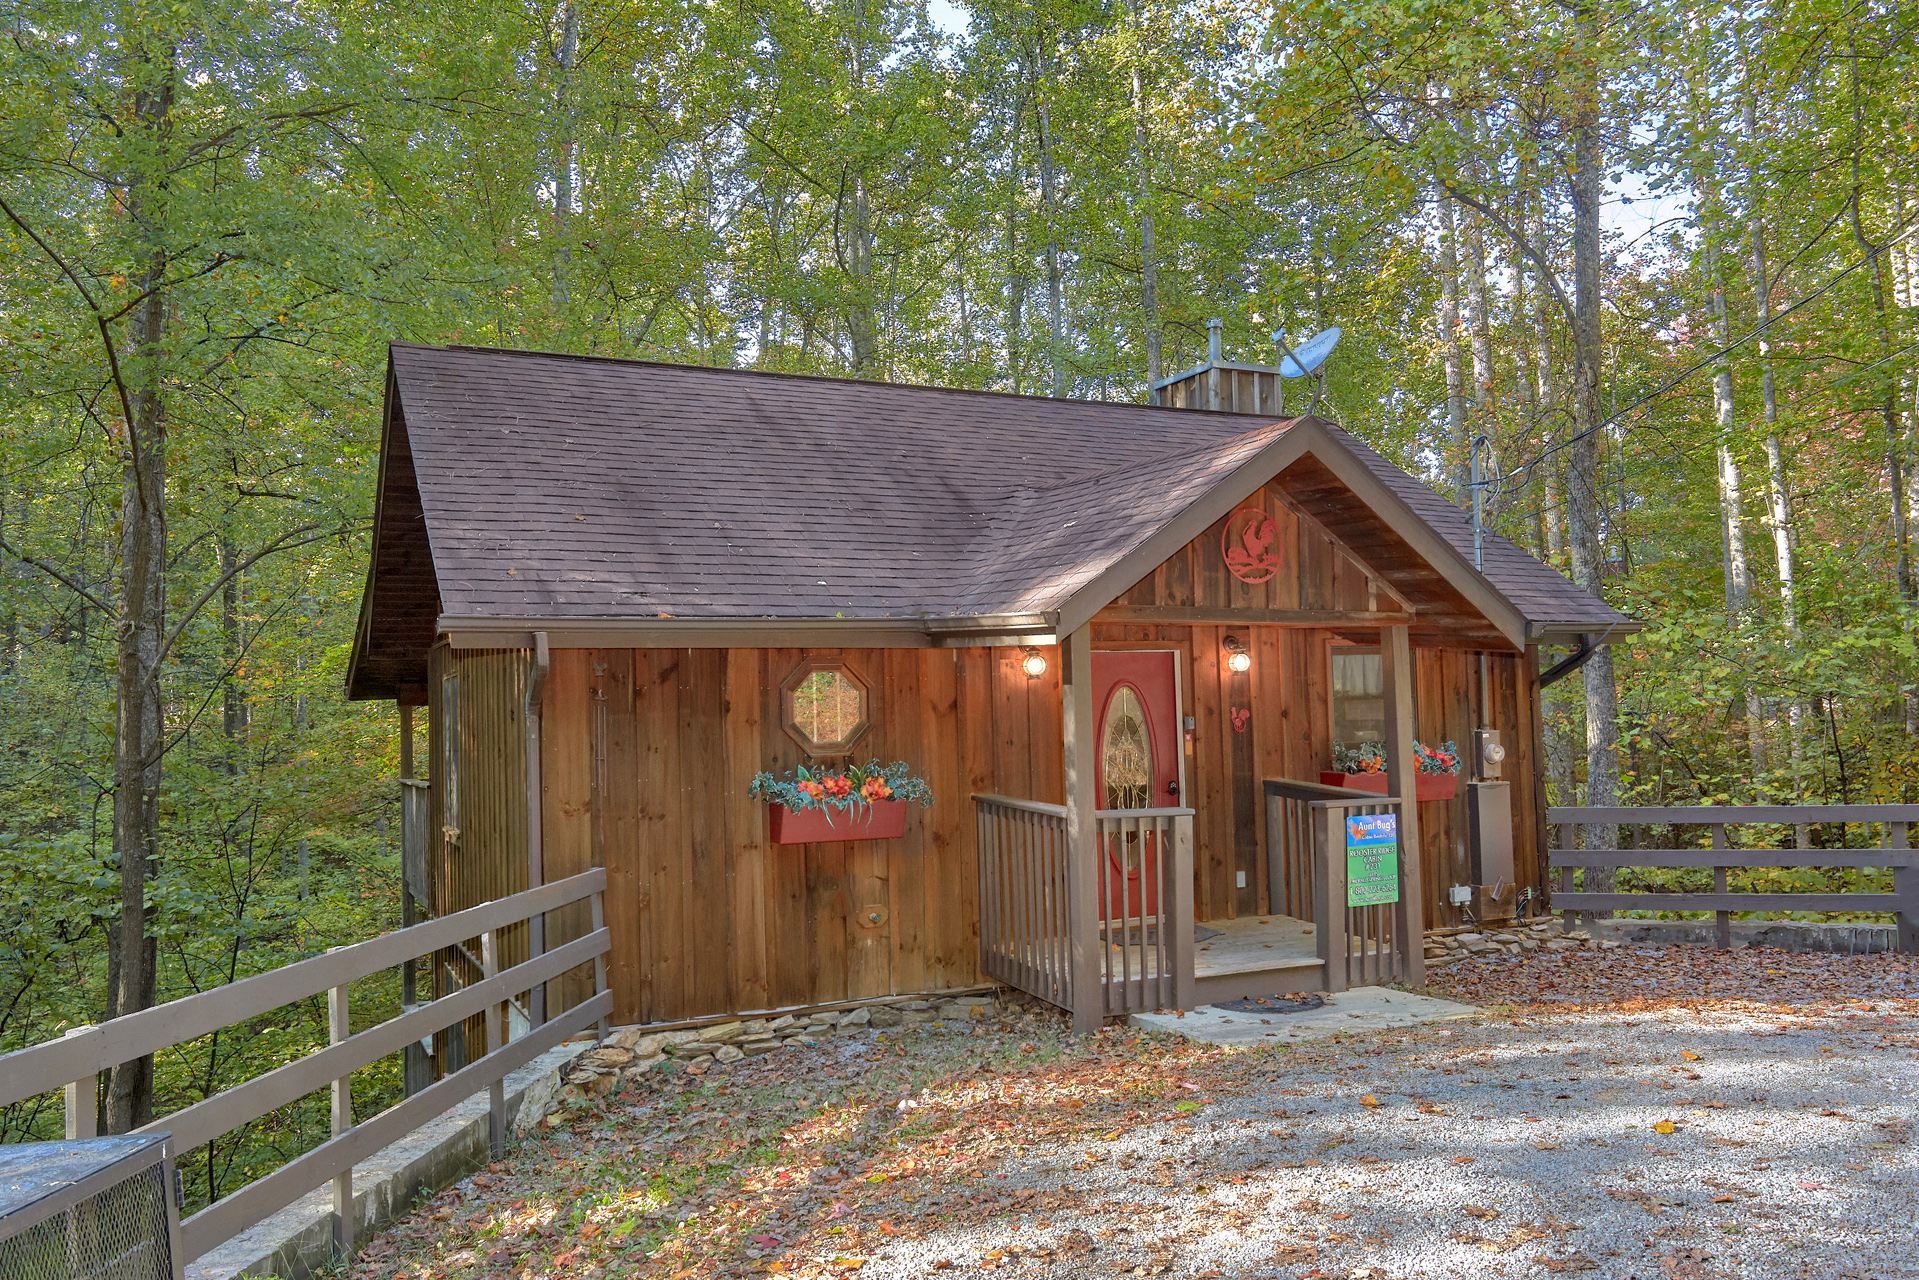 pinterest rental monterey pond by vacation listing cookville cabin owner cabins crossville pigeon bedroom romantic near pin vacations muddy forge in tennessee